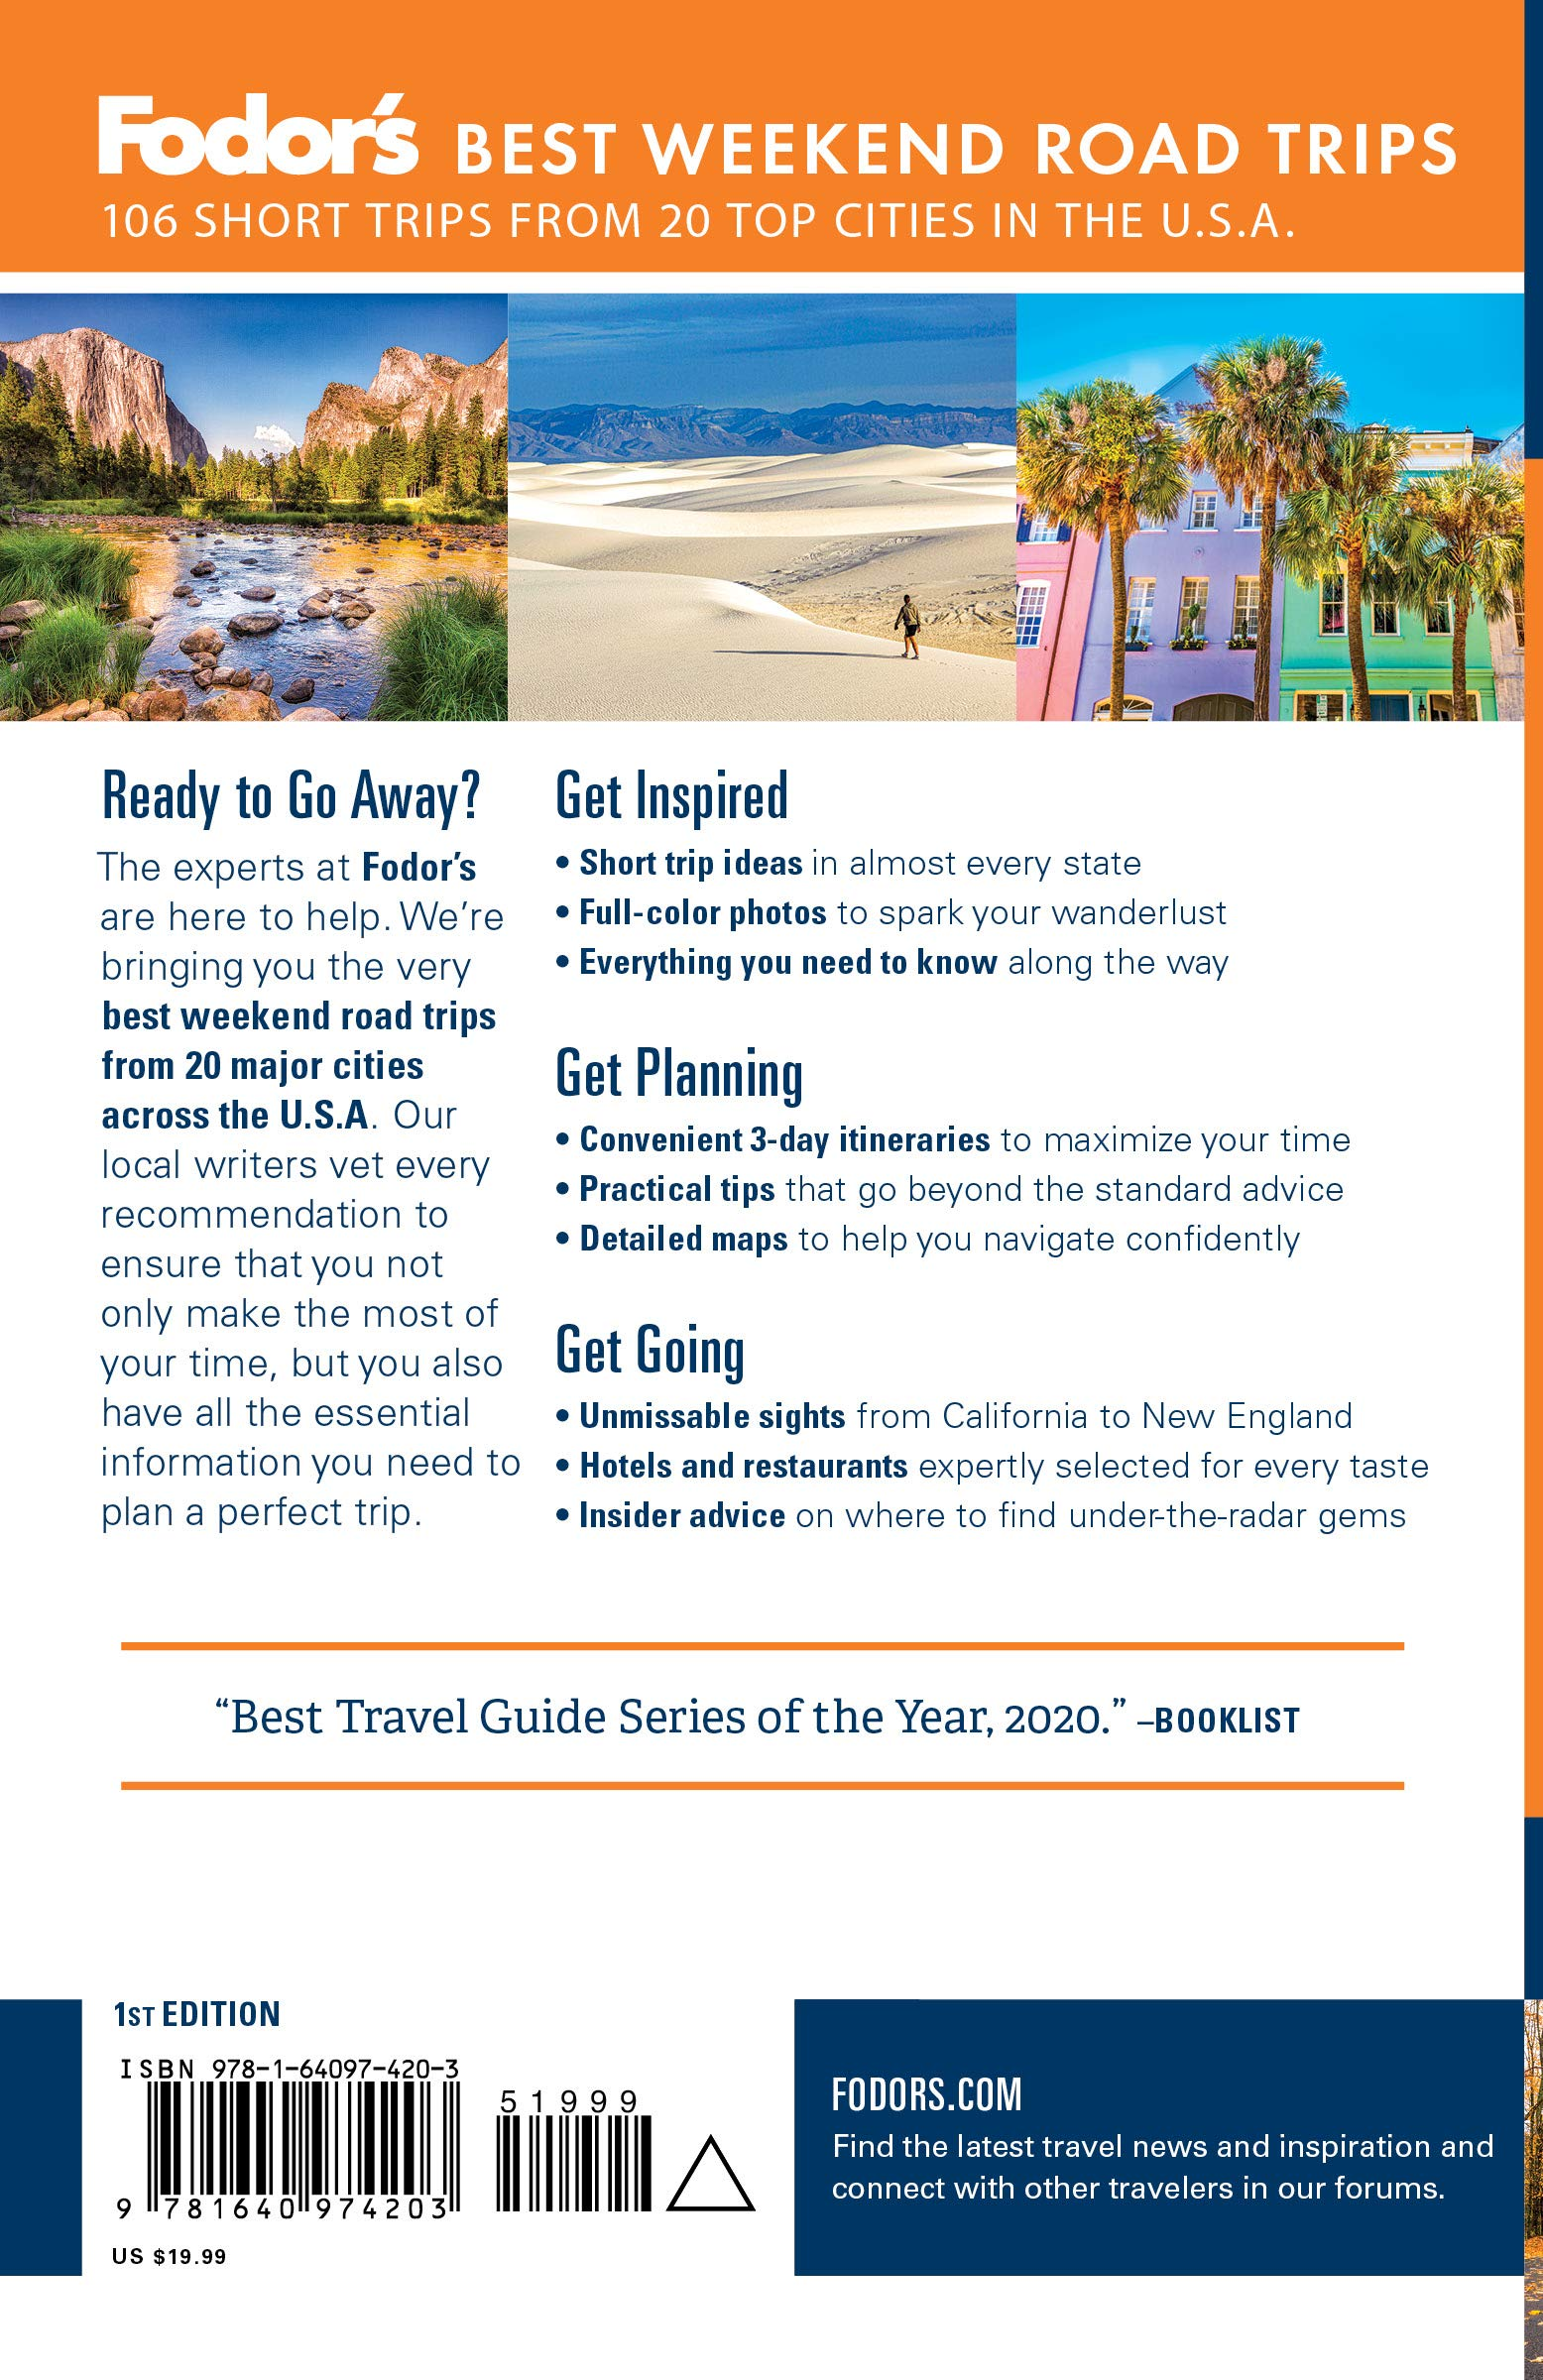 Fodor S Best Weekend Road Trips Full Color Travel Guide Fodor S Travel Guides 9781640974203 Amazon Com Books